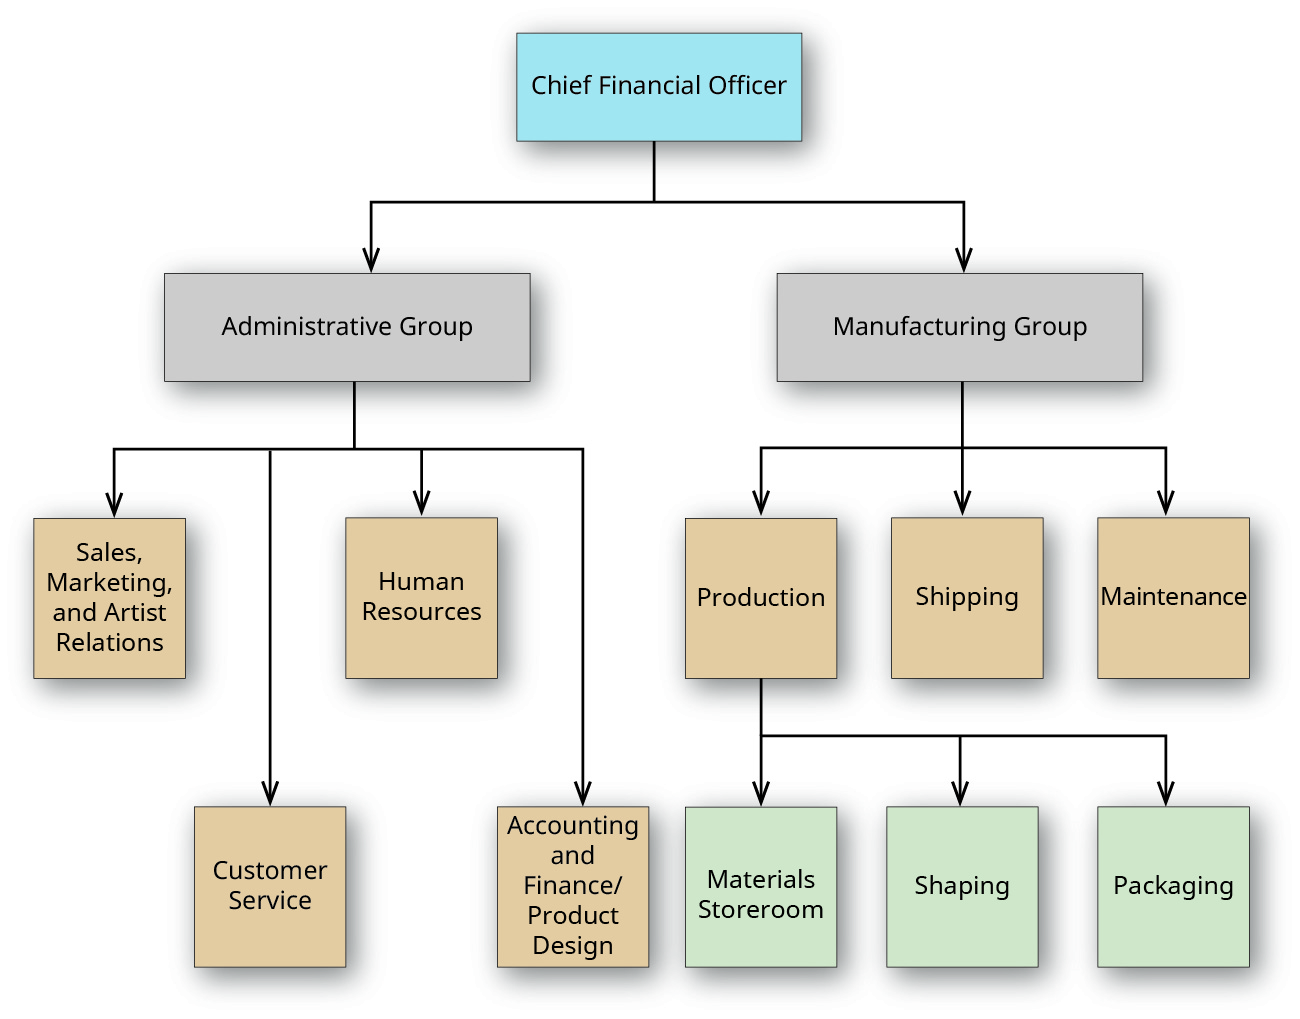 Box labeled Chief Financial Officer at the top points to two boxes just below labeled Administrative Group and Manufacturing Group.